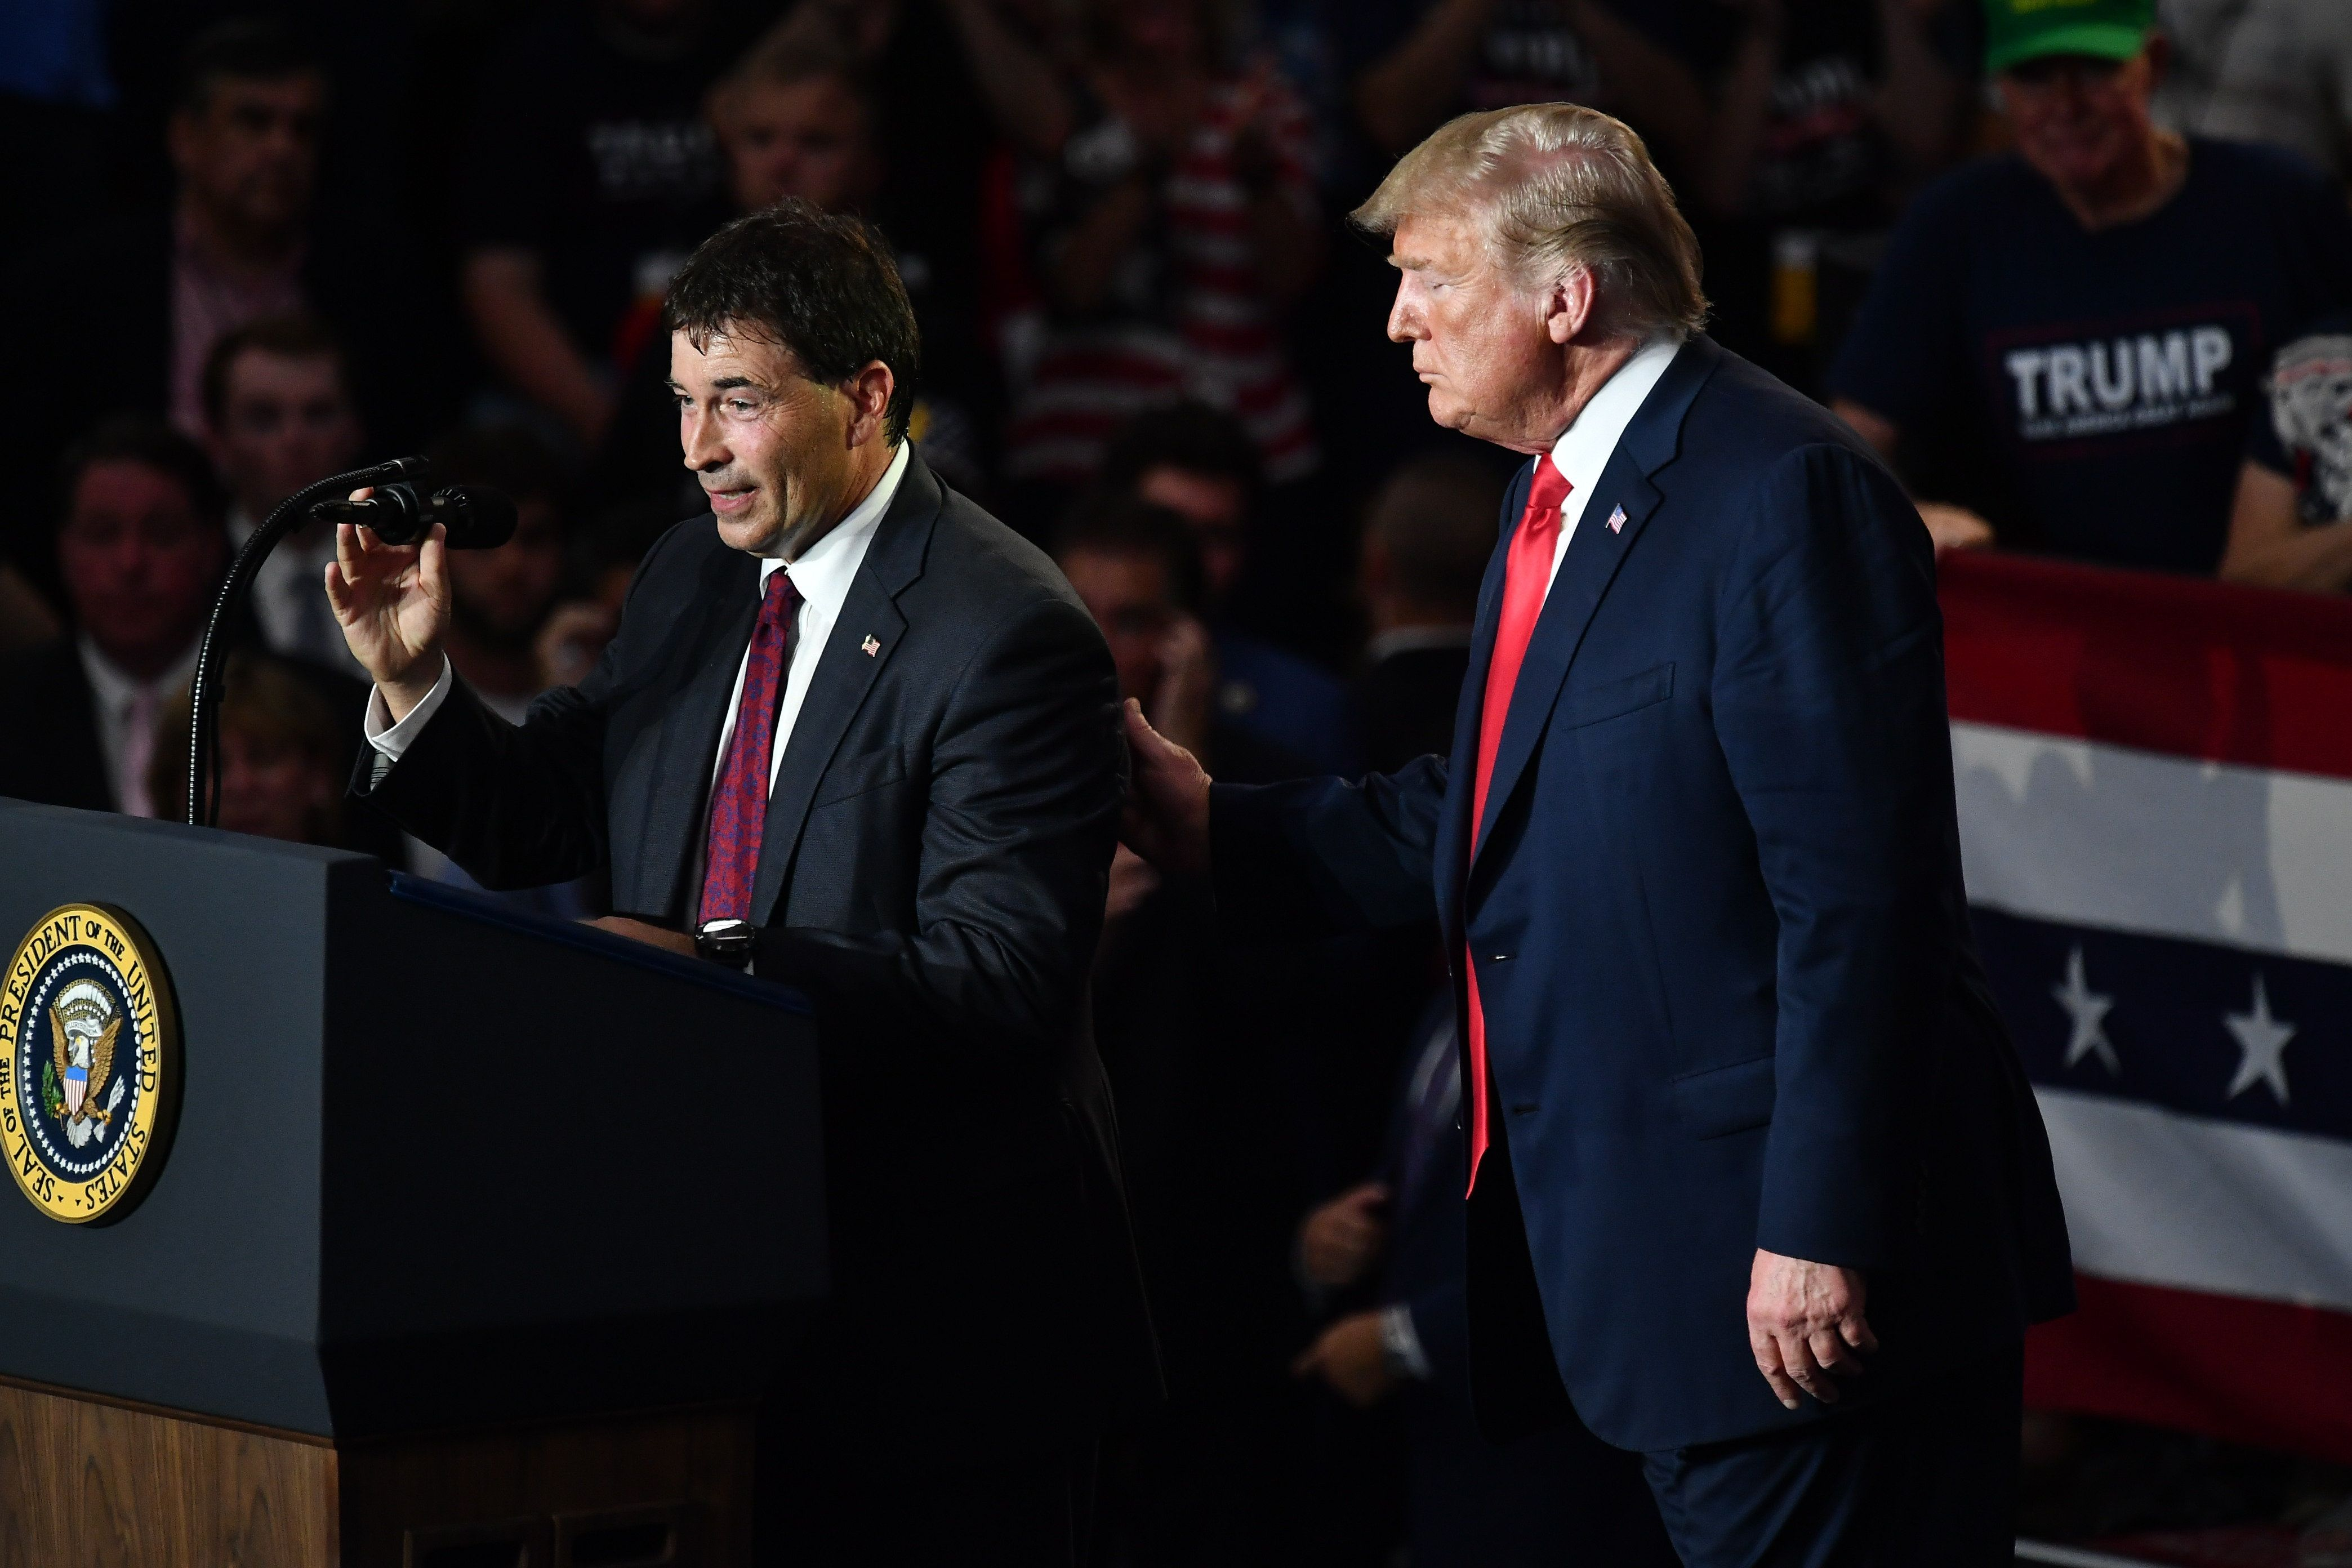 Republican House candidate Troy Balderson speaks next to President Donald Trump at a rally in Lewis Center Ohio on Saturday